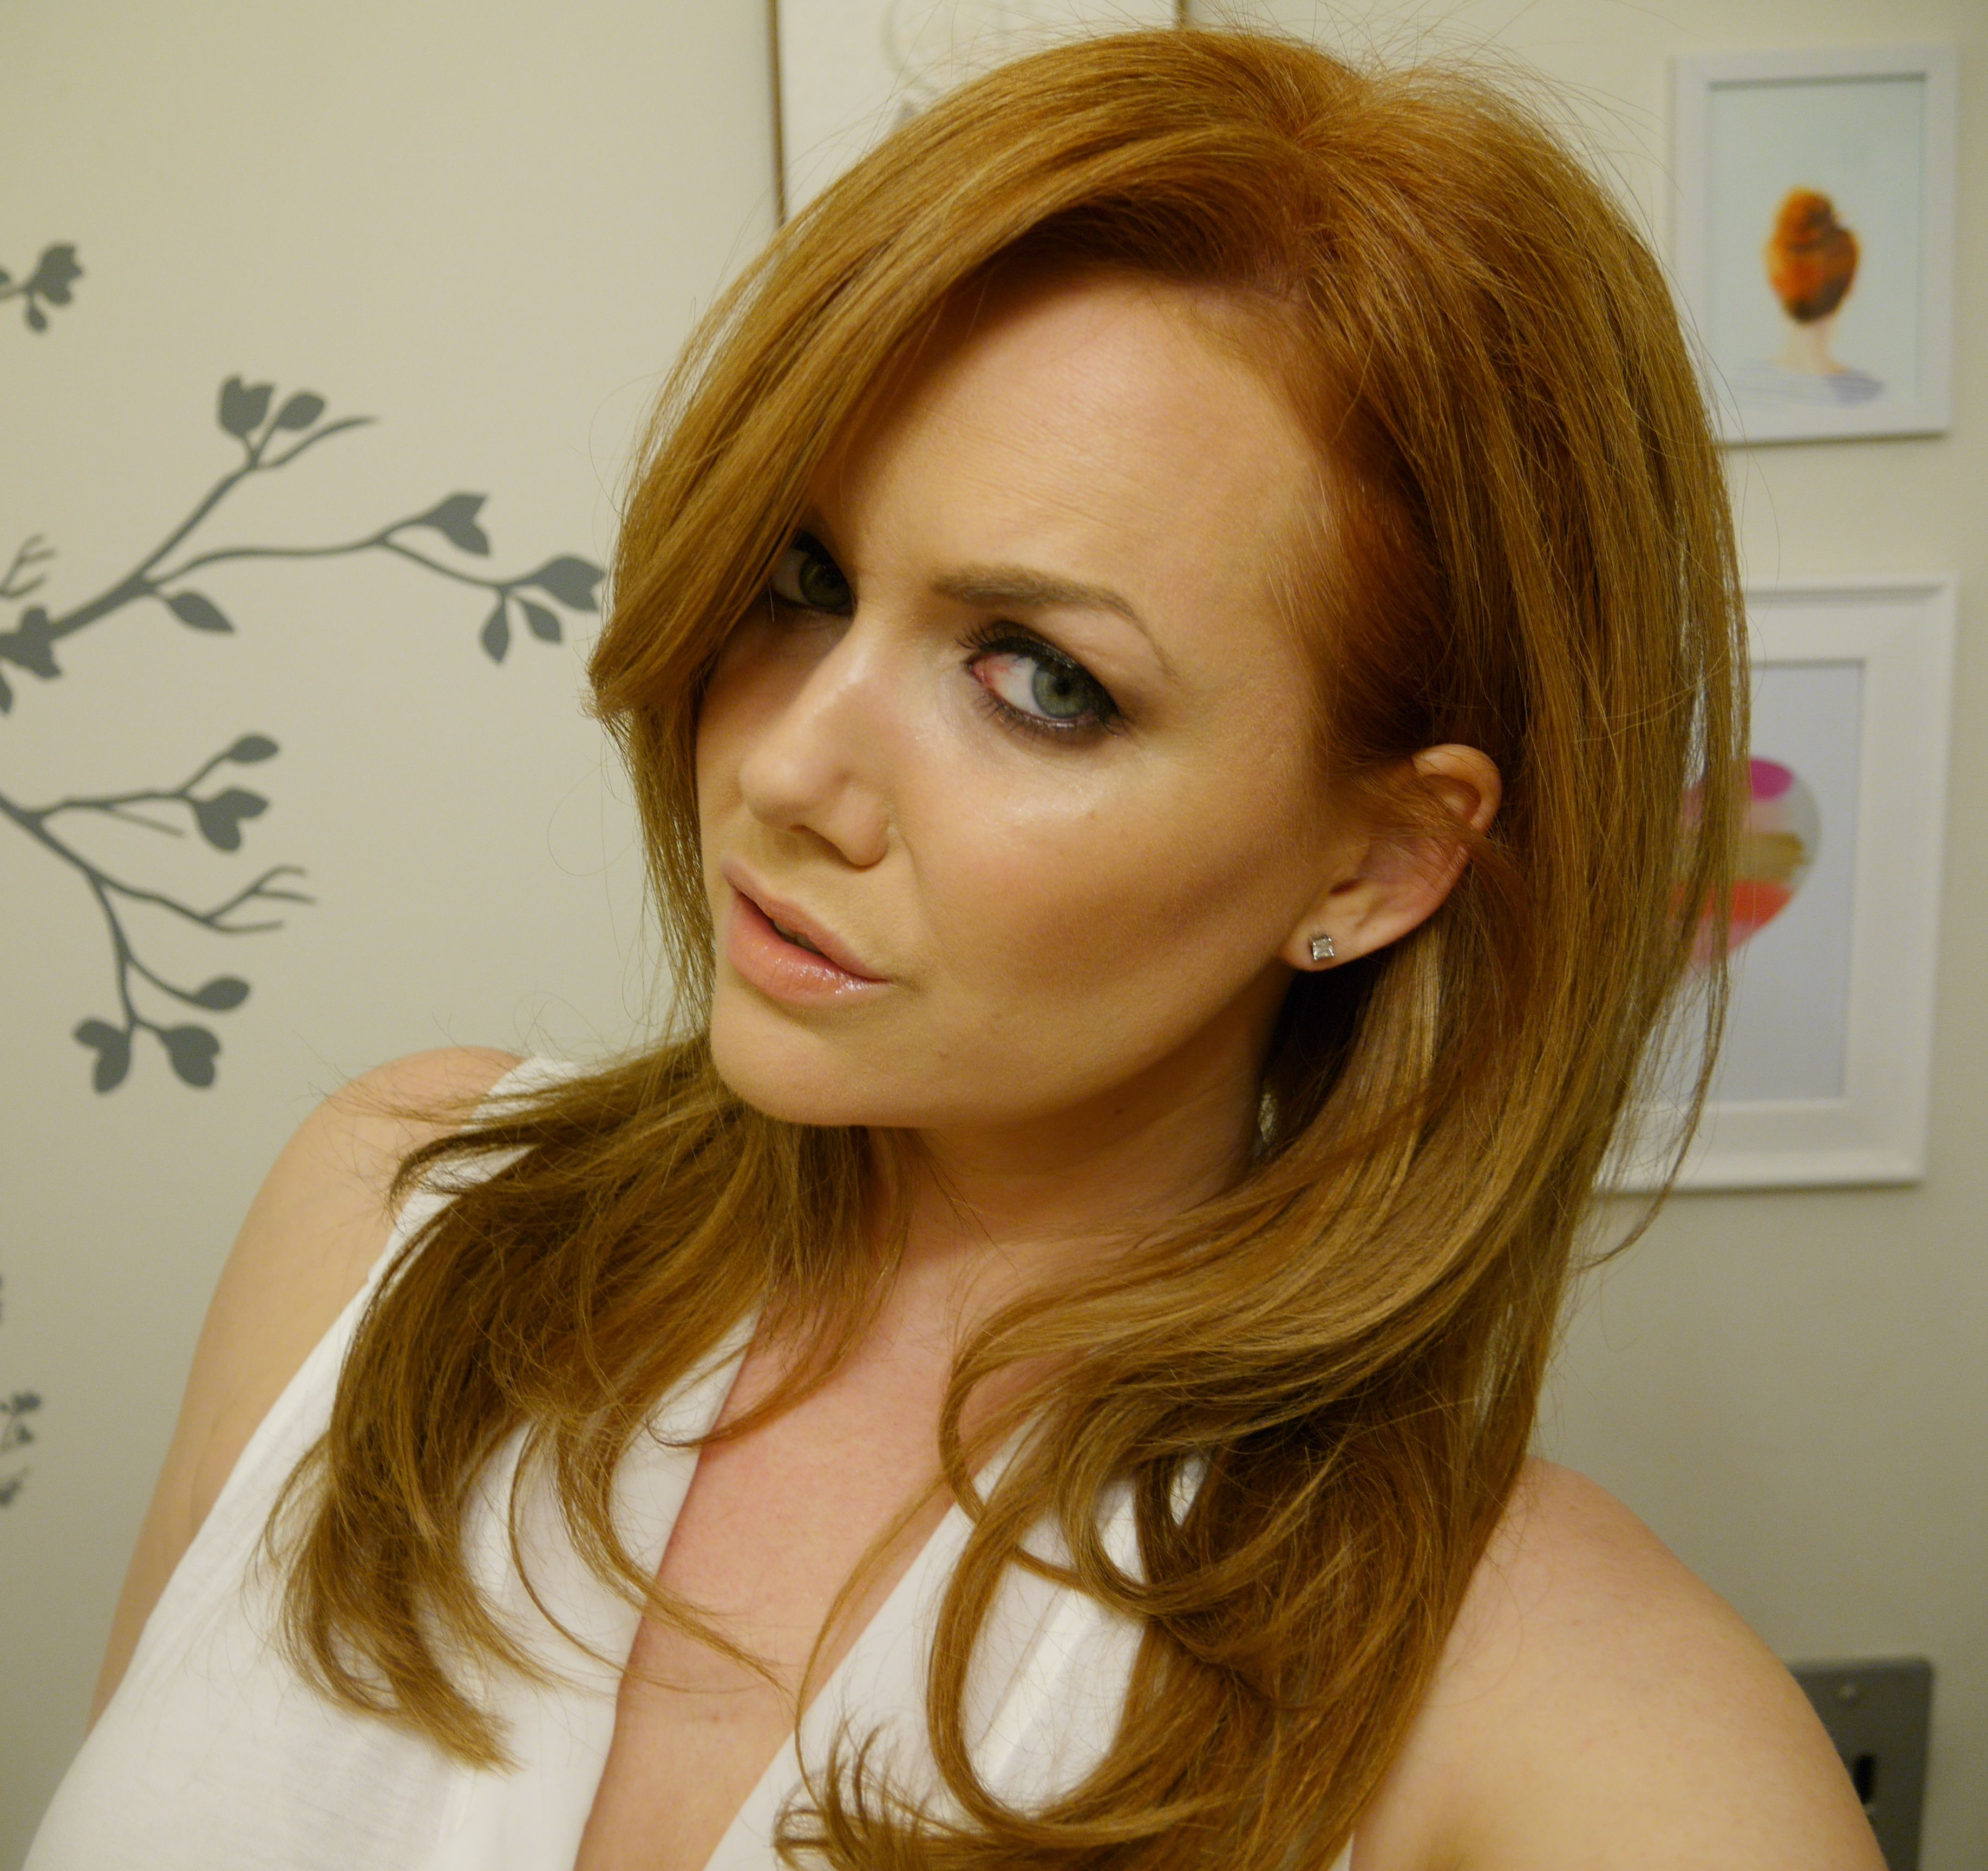 How To Get Strawberry Blonde Hair At Home Strawberry Blonde Hair